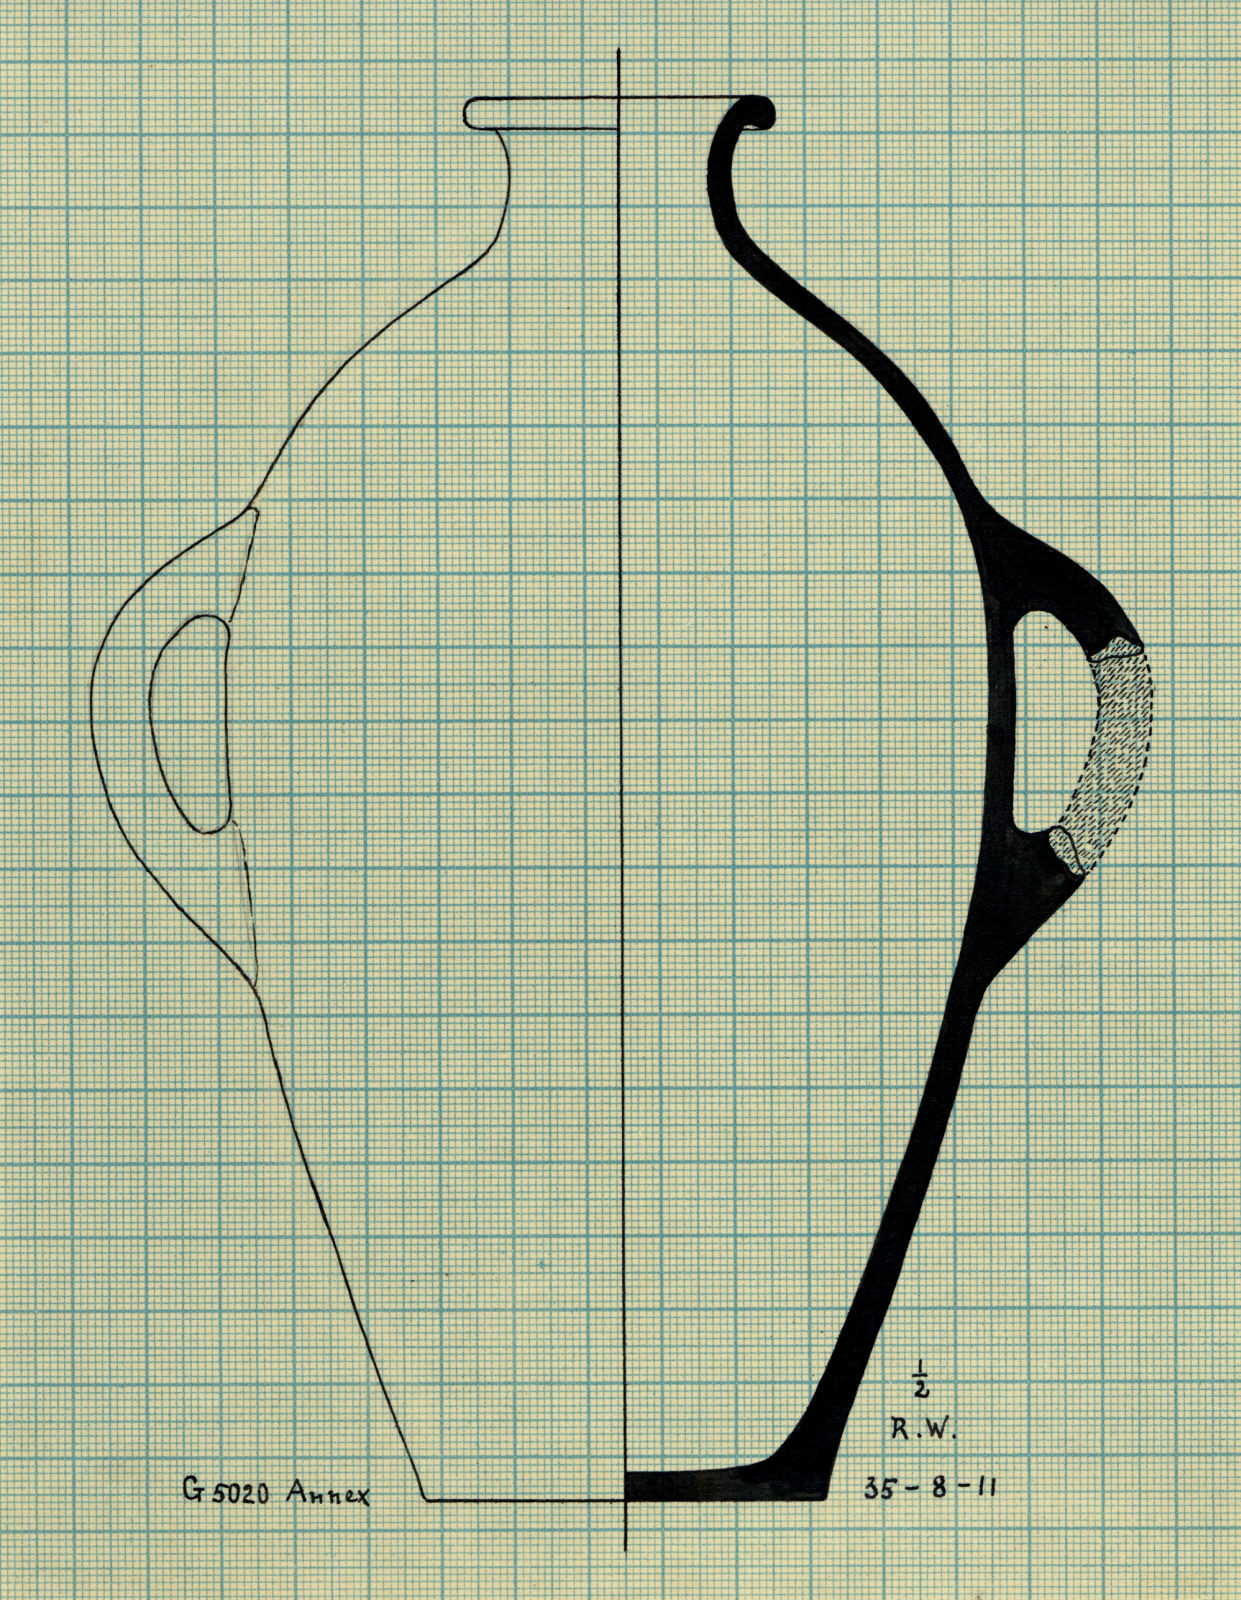 Drawings: G 5020-Annex: pottery, jar with two handles